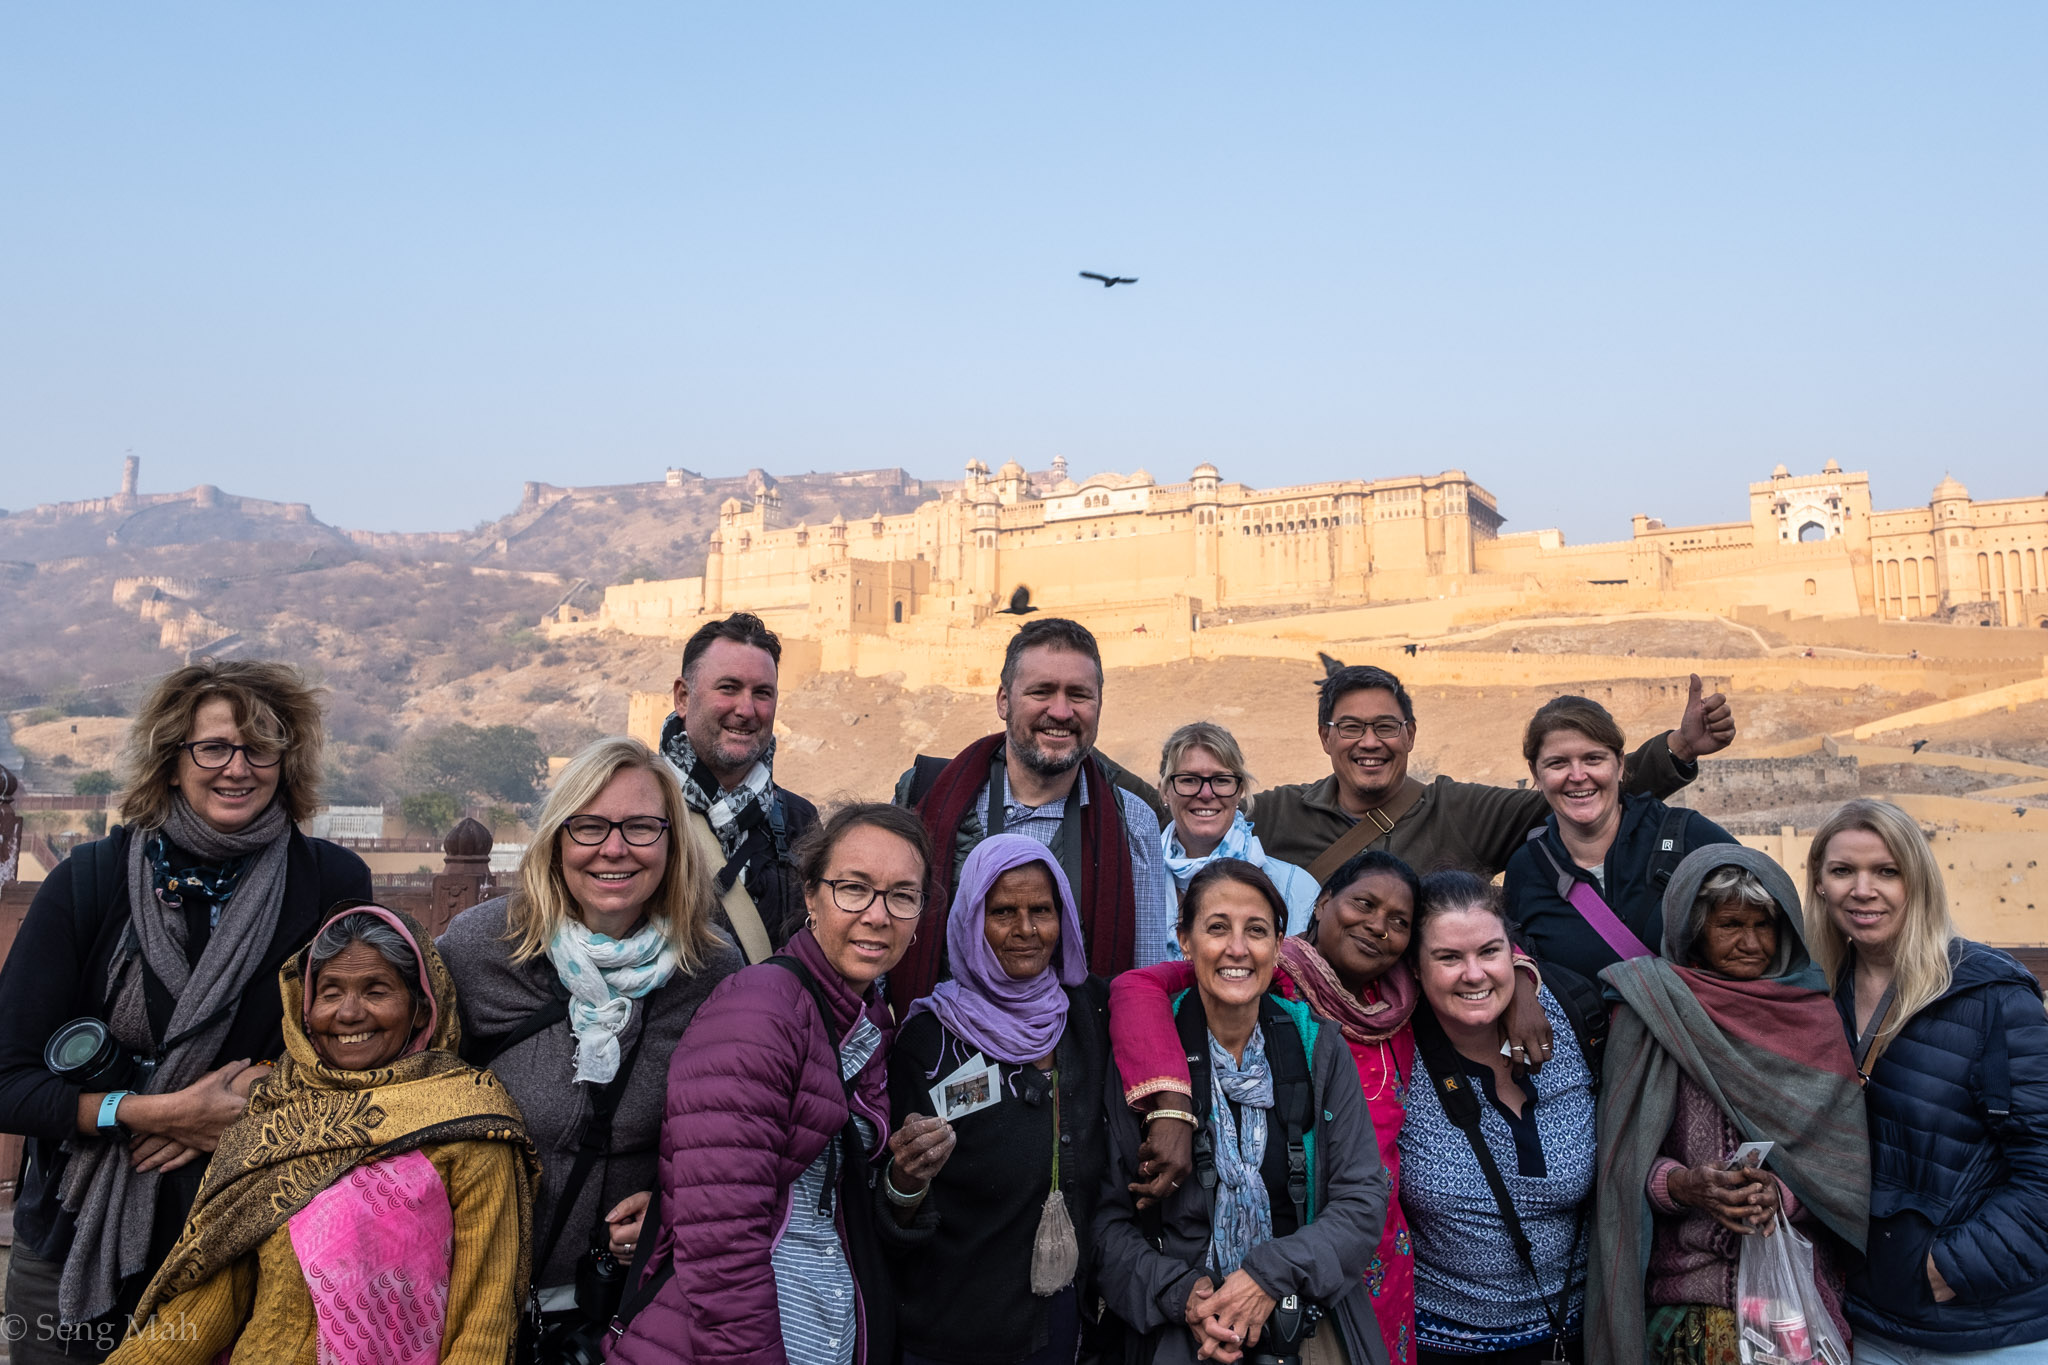 Group photo at Amer Fort